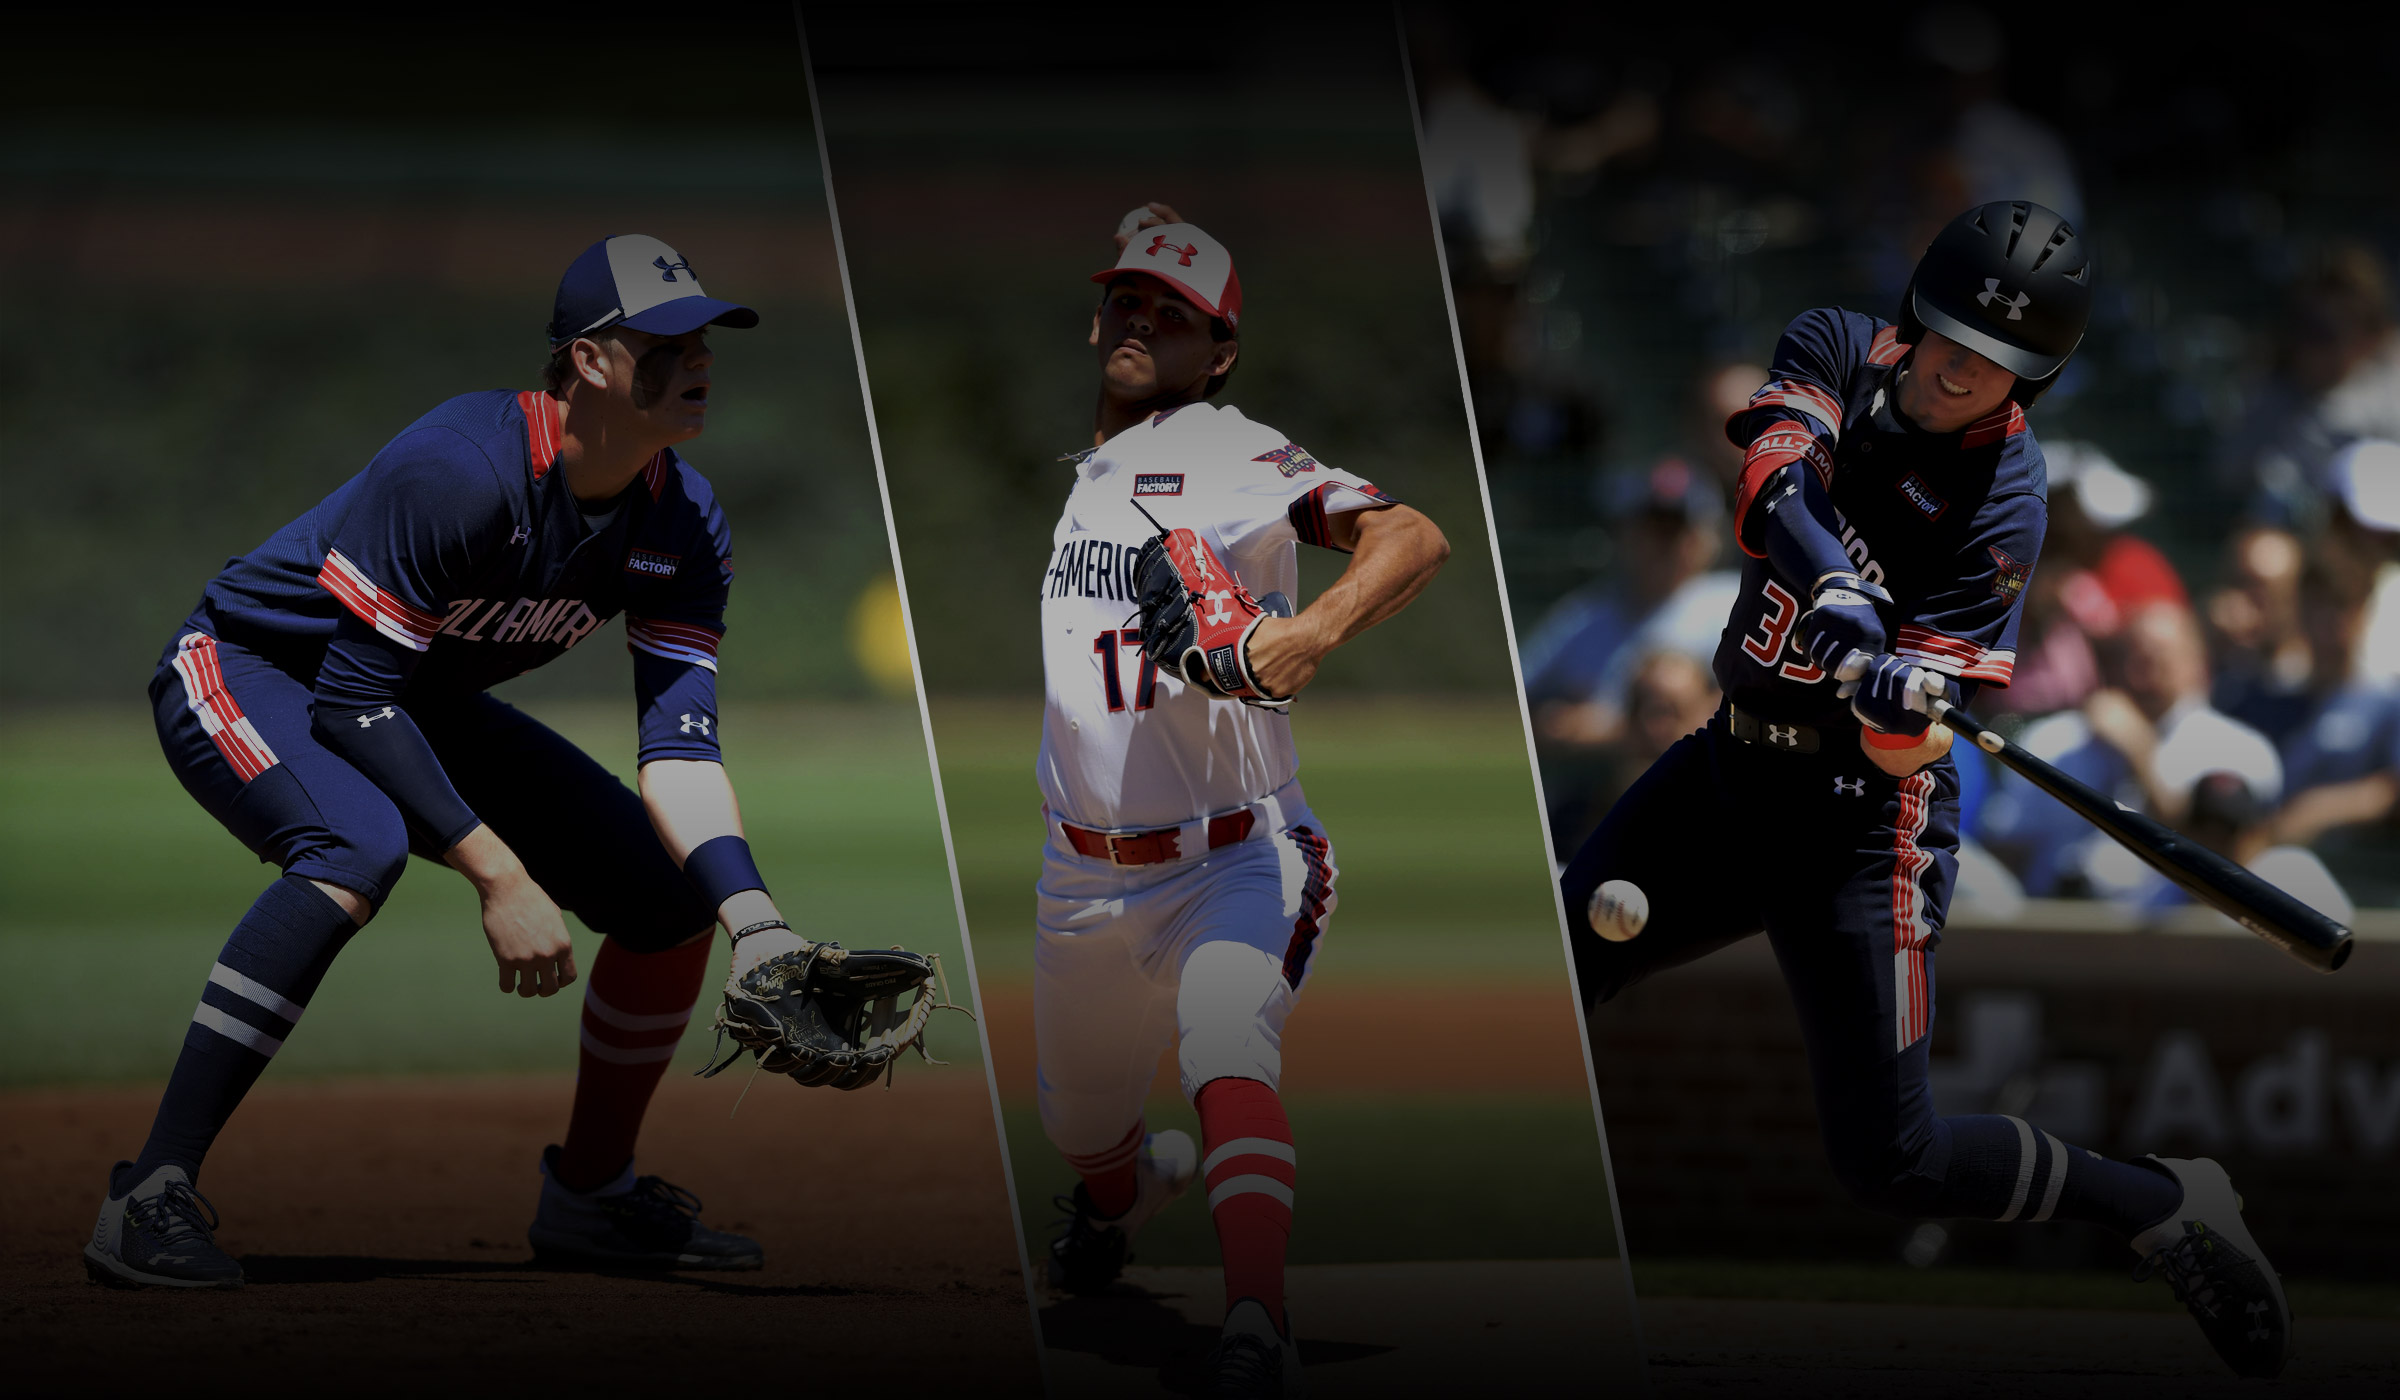 Baseball Factory | Training, Evaluation, Showcases & Recruiting